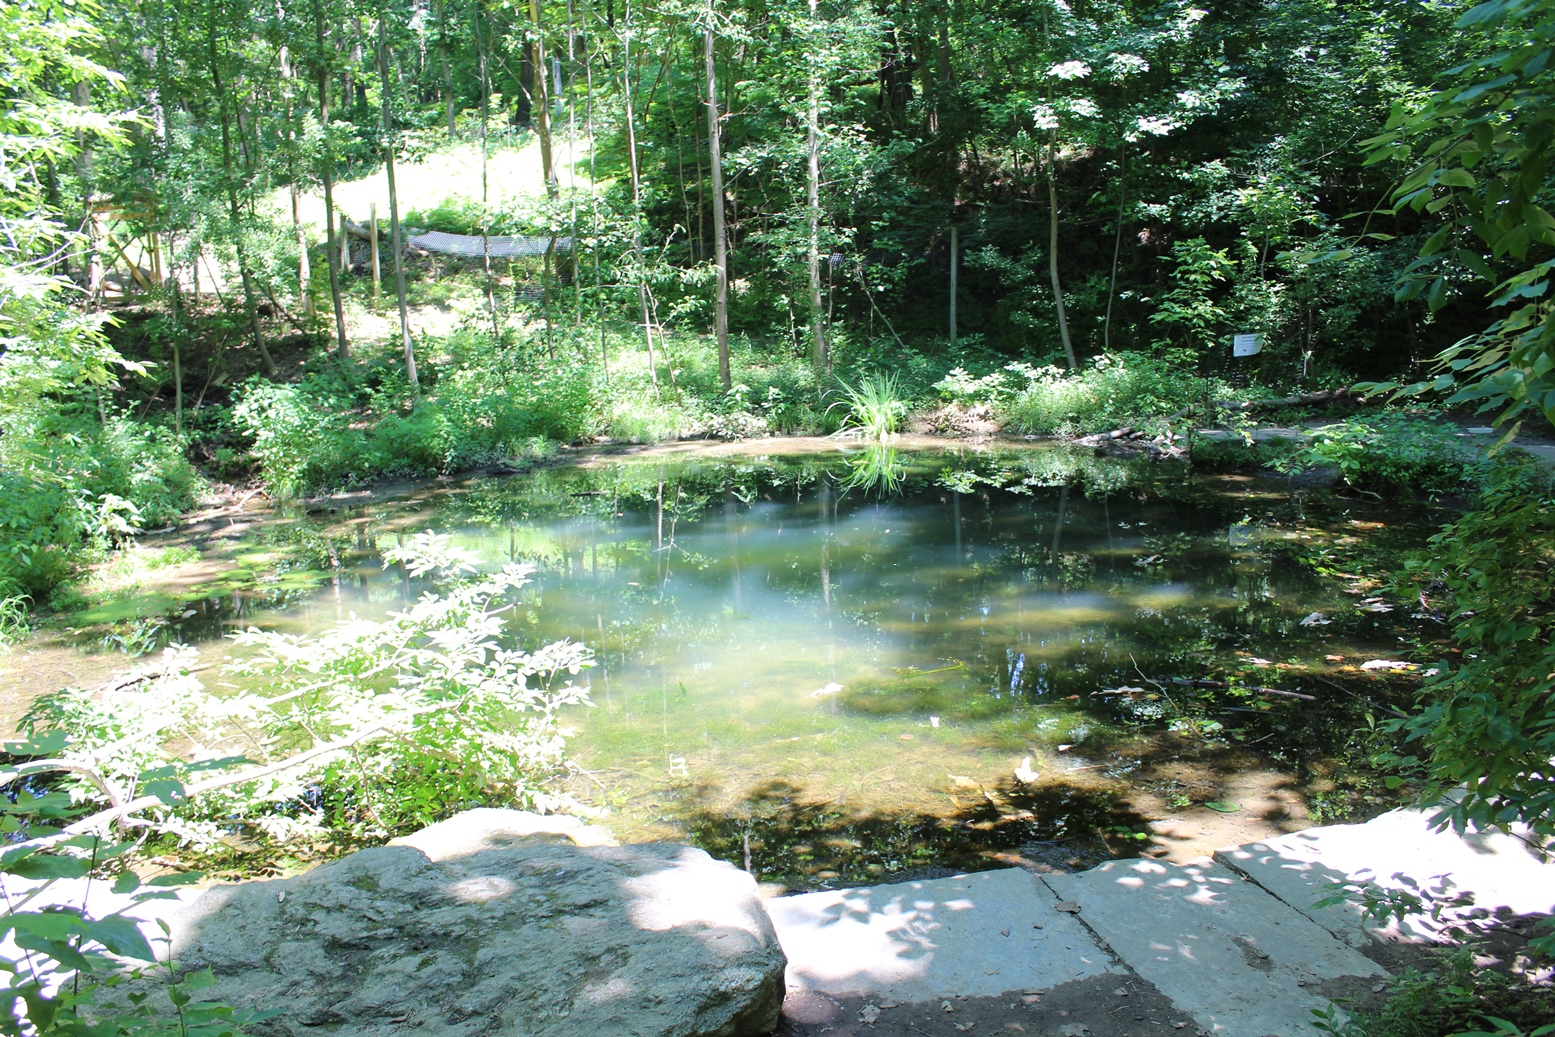 a pond surrounded by stone